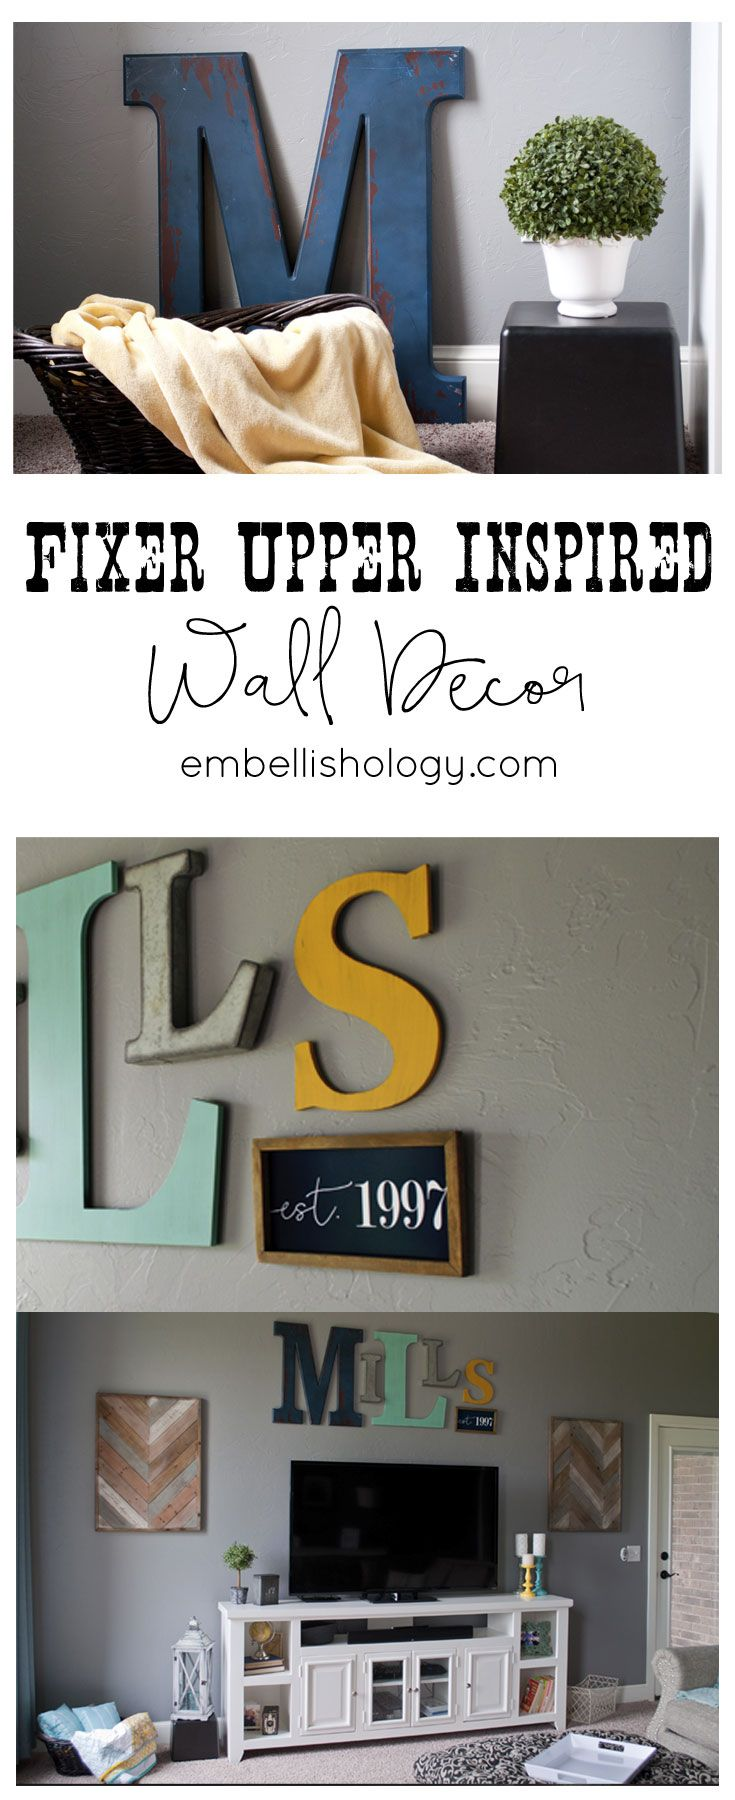 280 best wall decor images on pinterest at home barn boards and cook